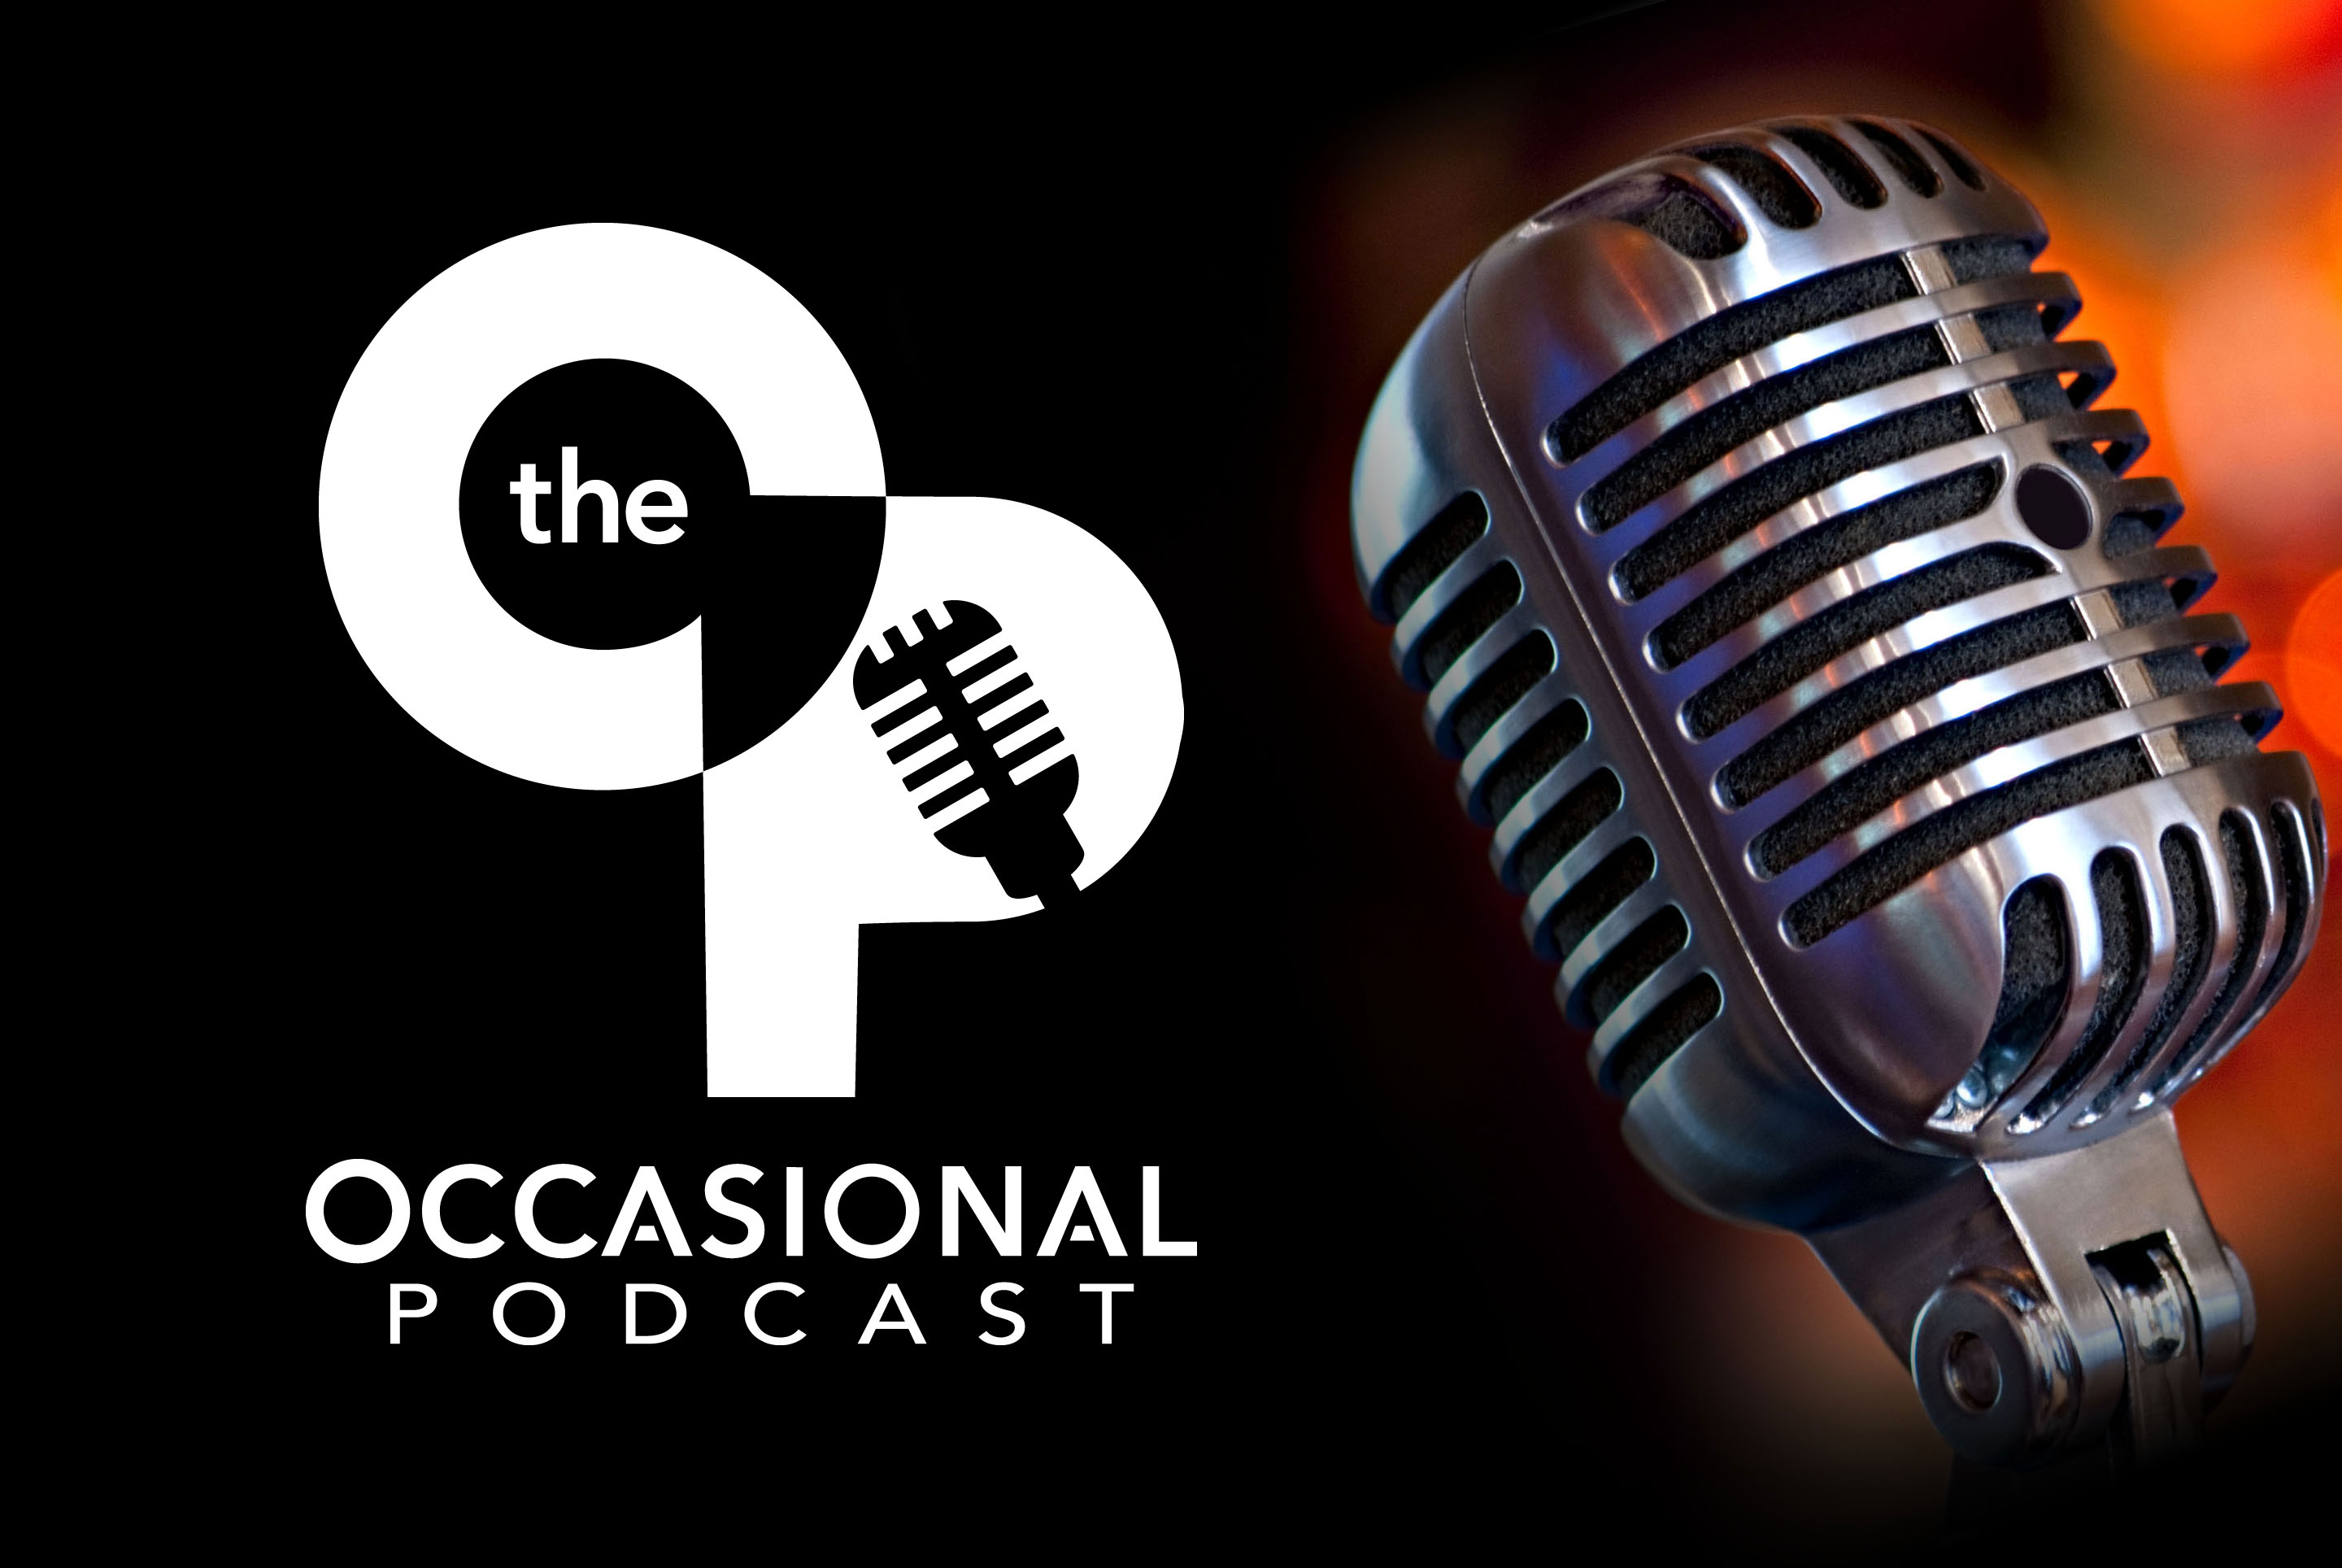 Subwoofers And Two Channel – Tips, Tricks and Setup | The Occasional Podcast